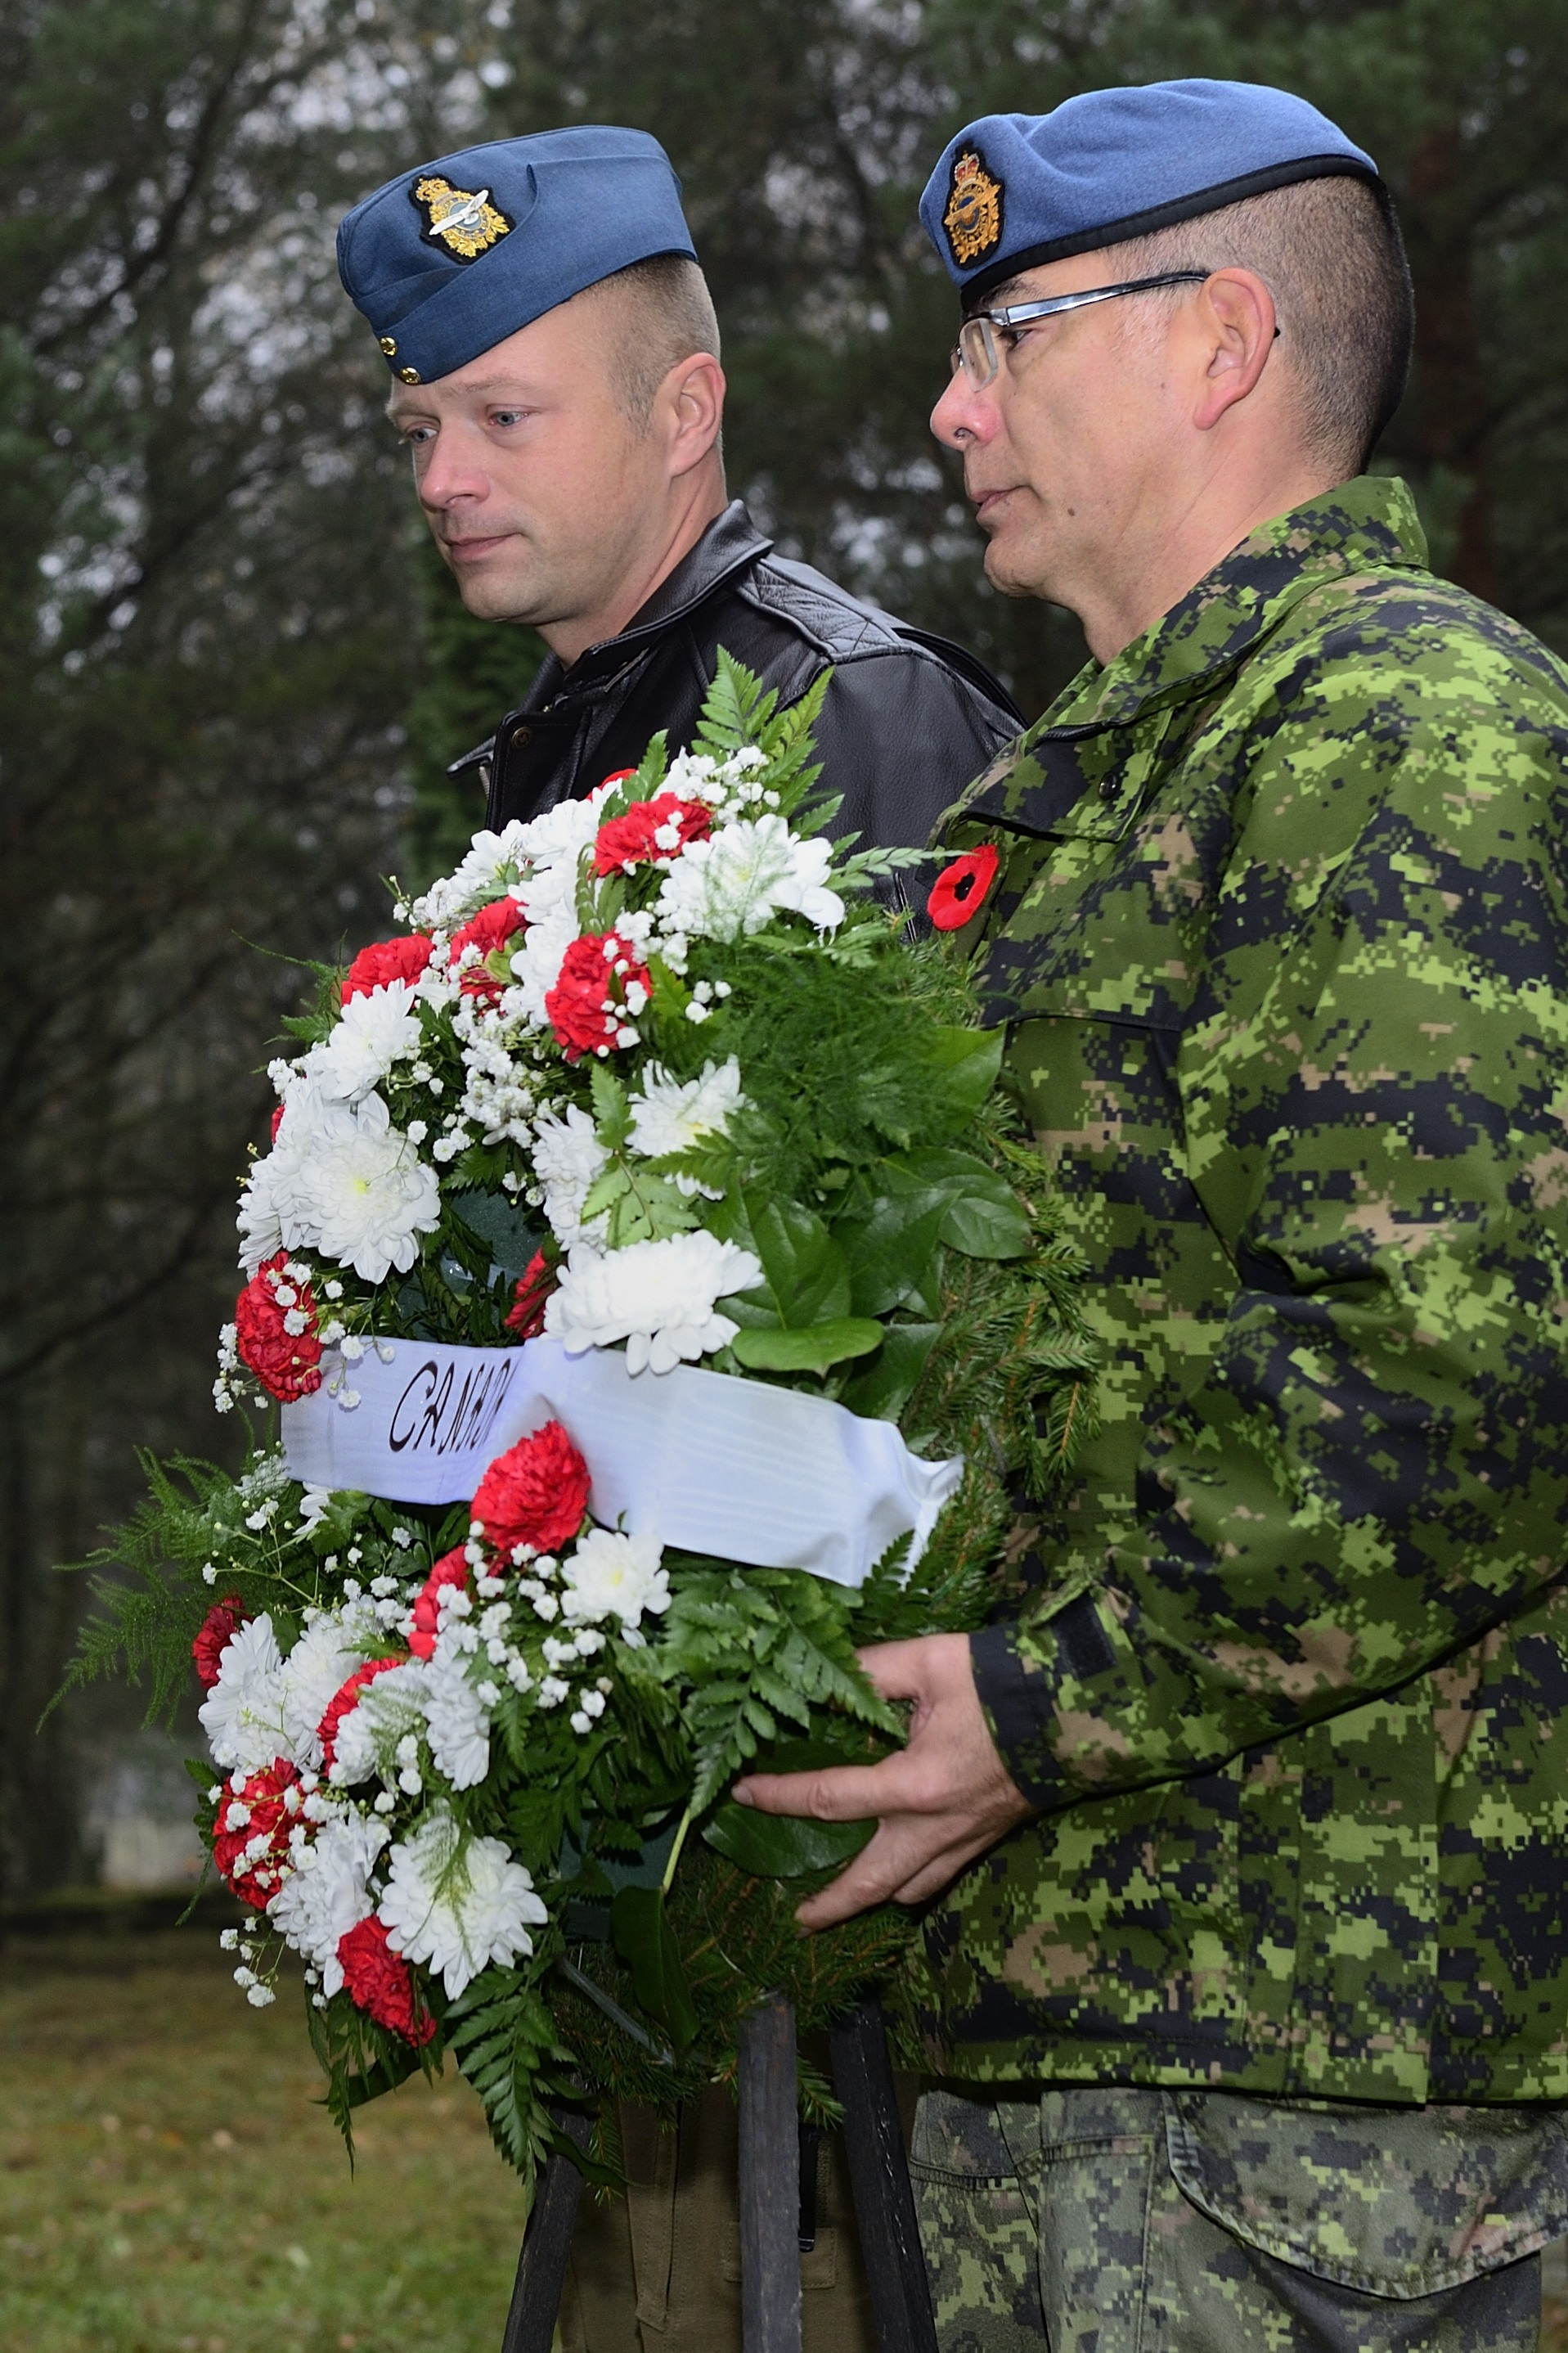 Lieutenant-Colonel David Pletz, the commander of Air Task Force-Lithuania, and Chief Warrant Officer Alain Roy, the chief warrant officer of the Task Force, prepare to lay a wreath at a memorial commemorating Warrant Officer Class 1 Keith Oliver Perry, who died in prisoner of war camp in 1943 in what is now Lithuania. PHOTO: Air Task Force Lithuania